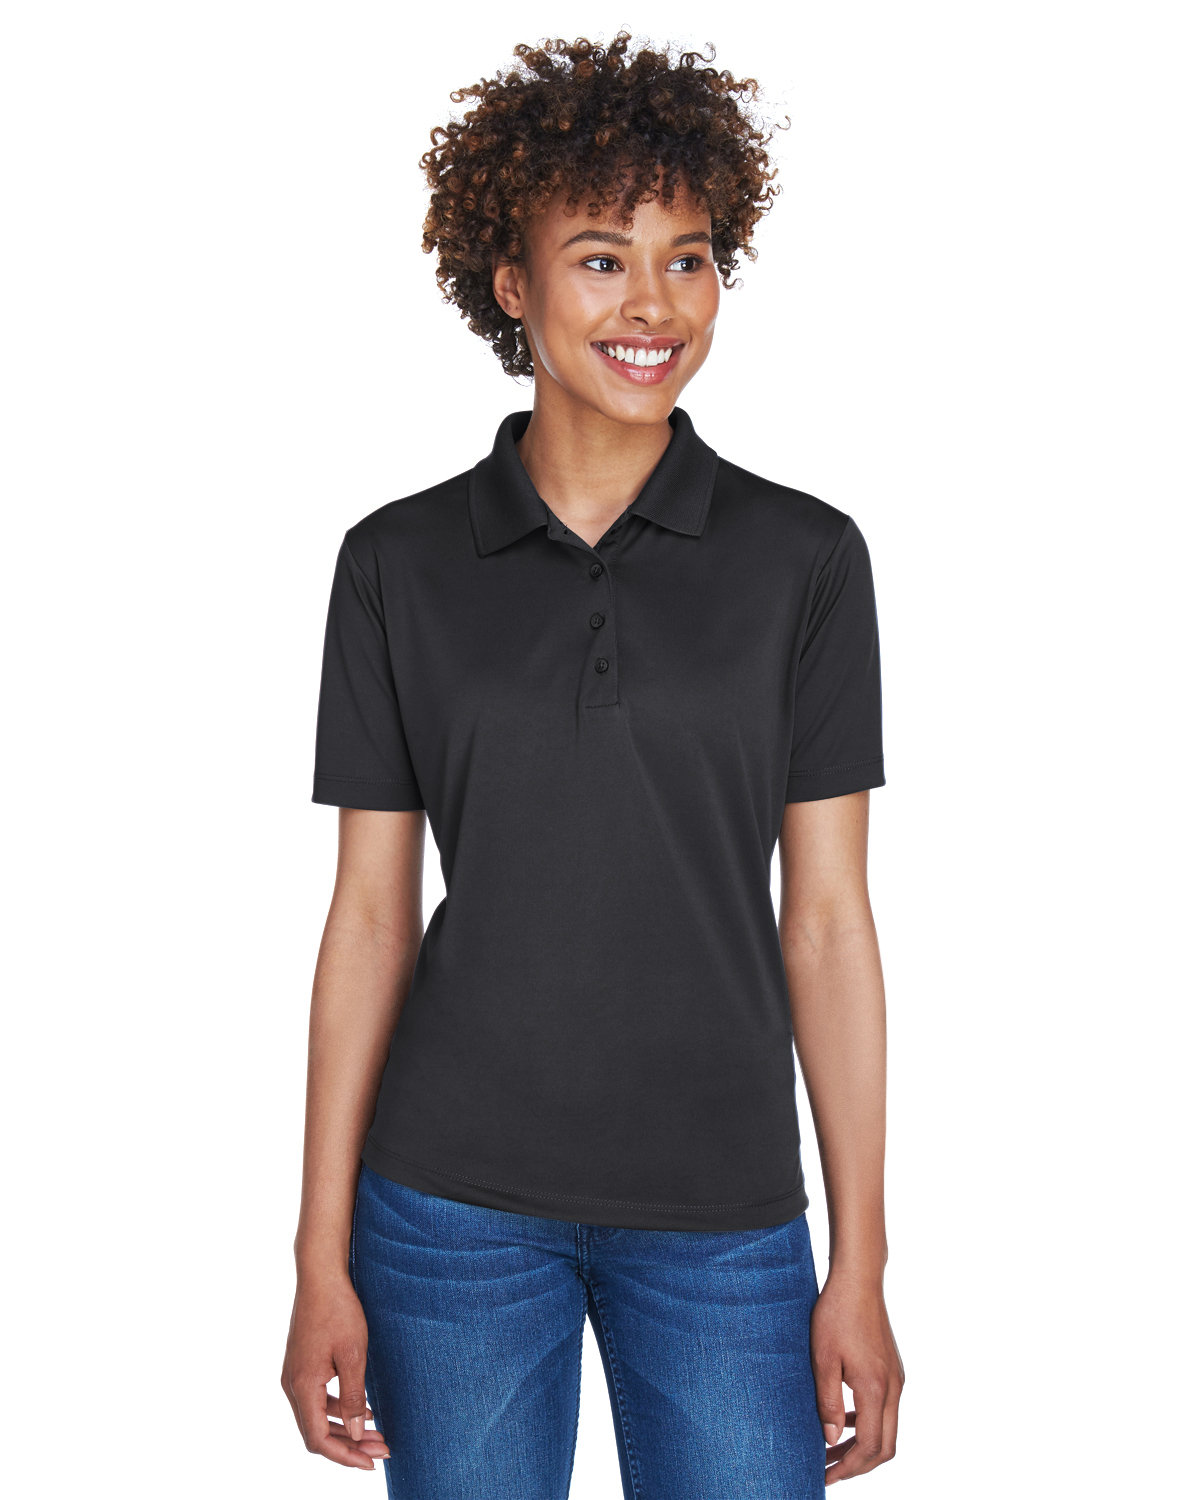 UltraClub Ladies' Cool & Dry 8-Star Elite Performance Interlock Polo BLACK